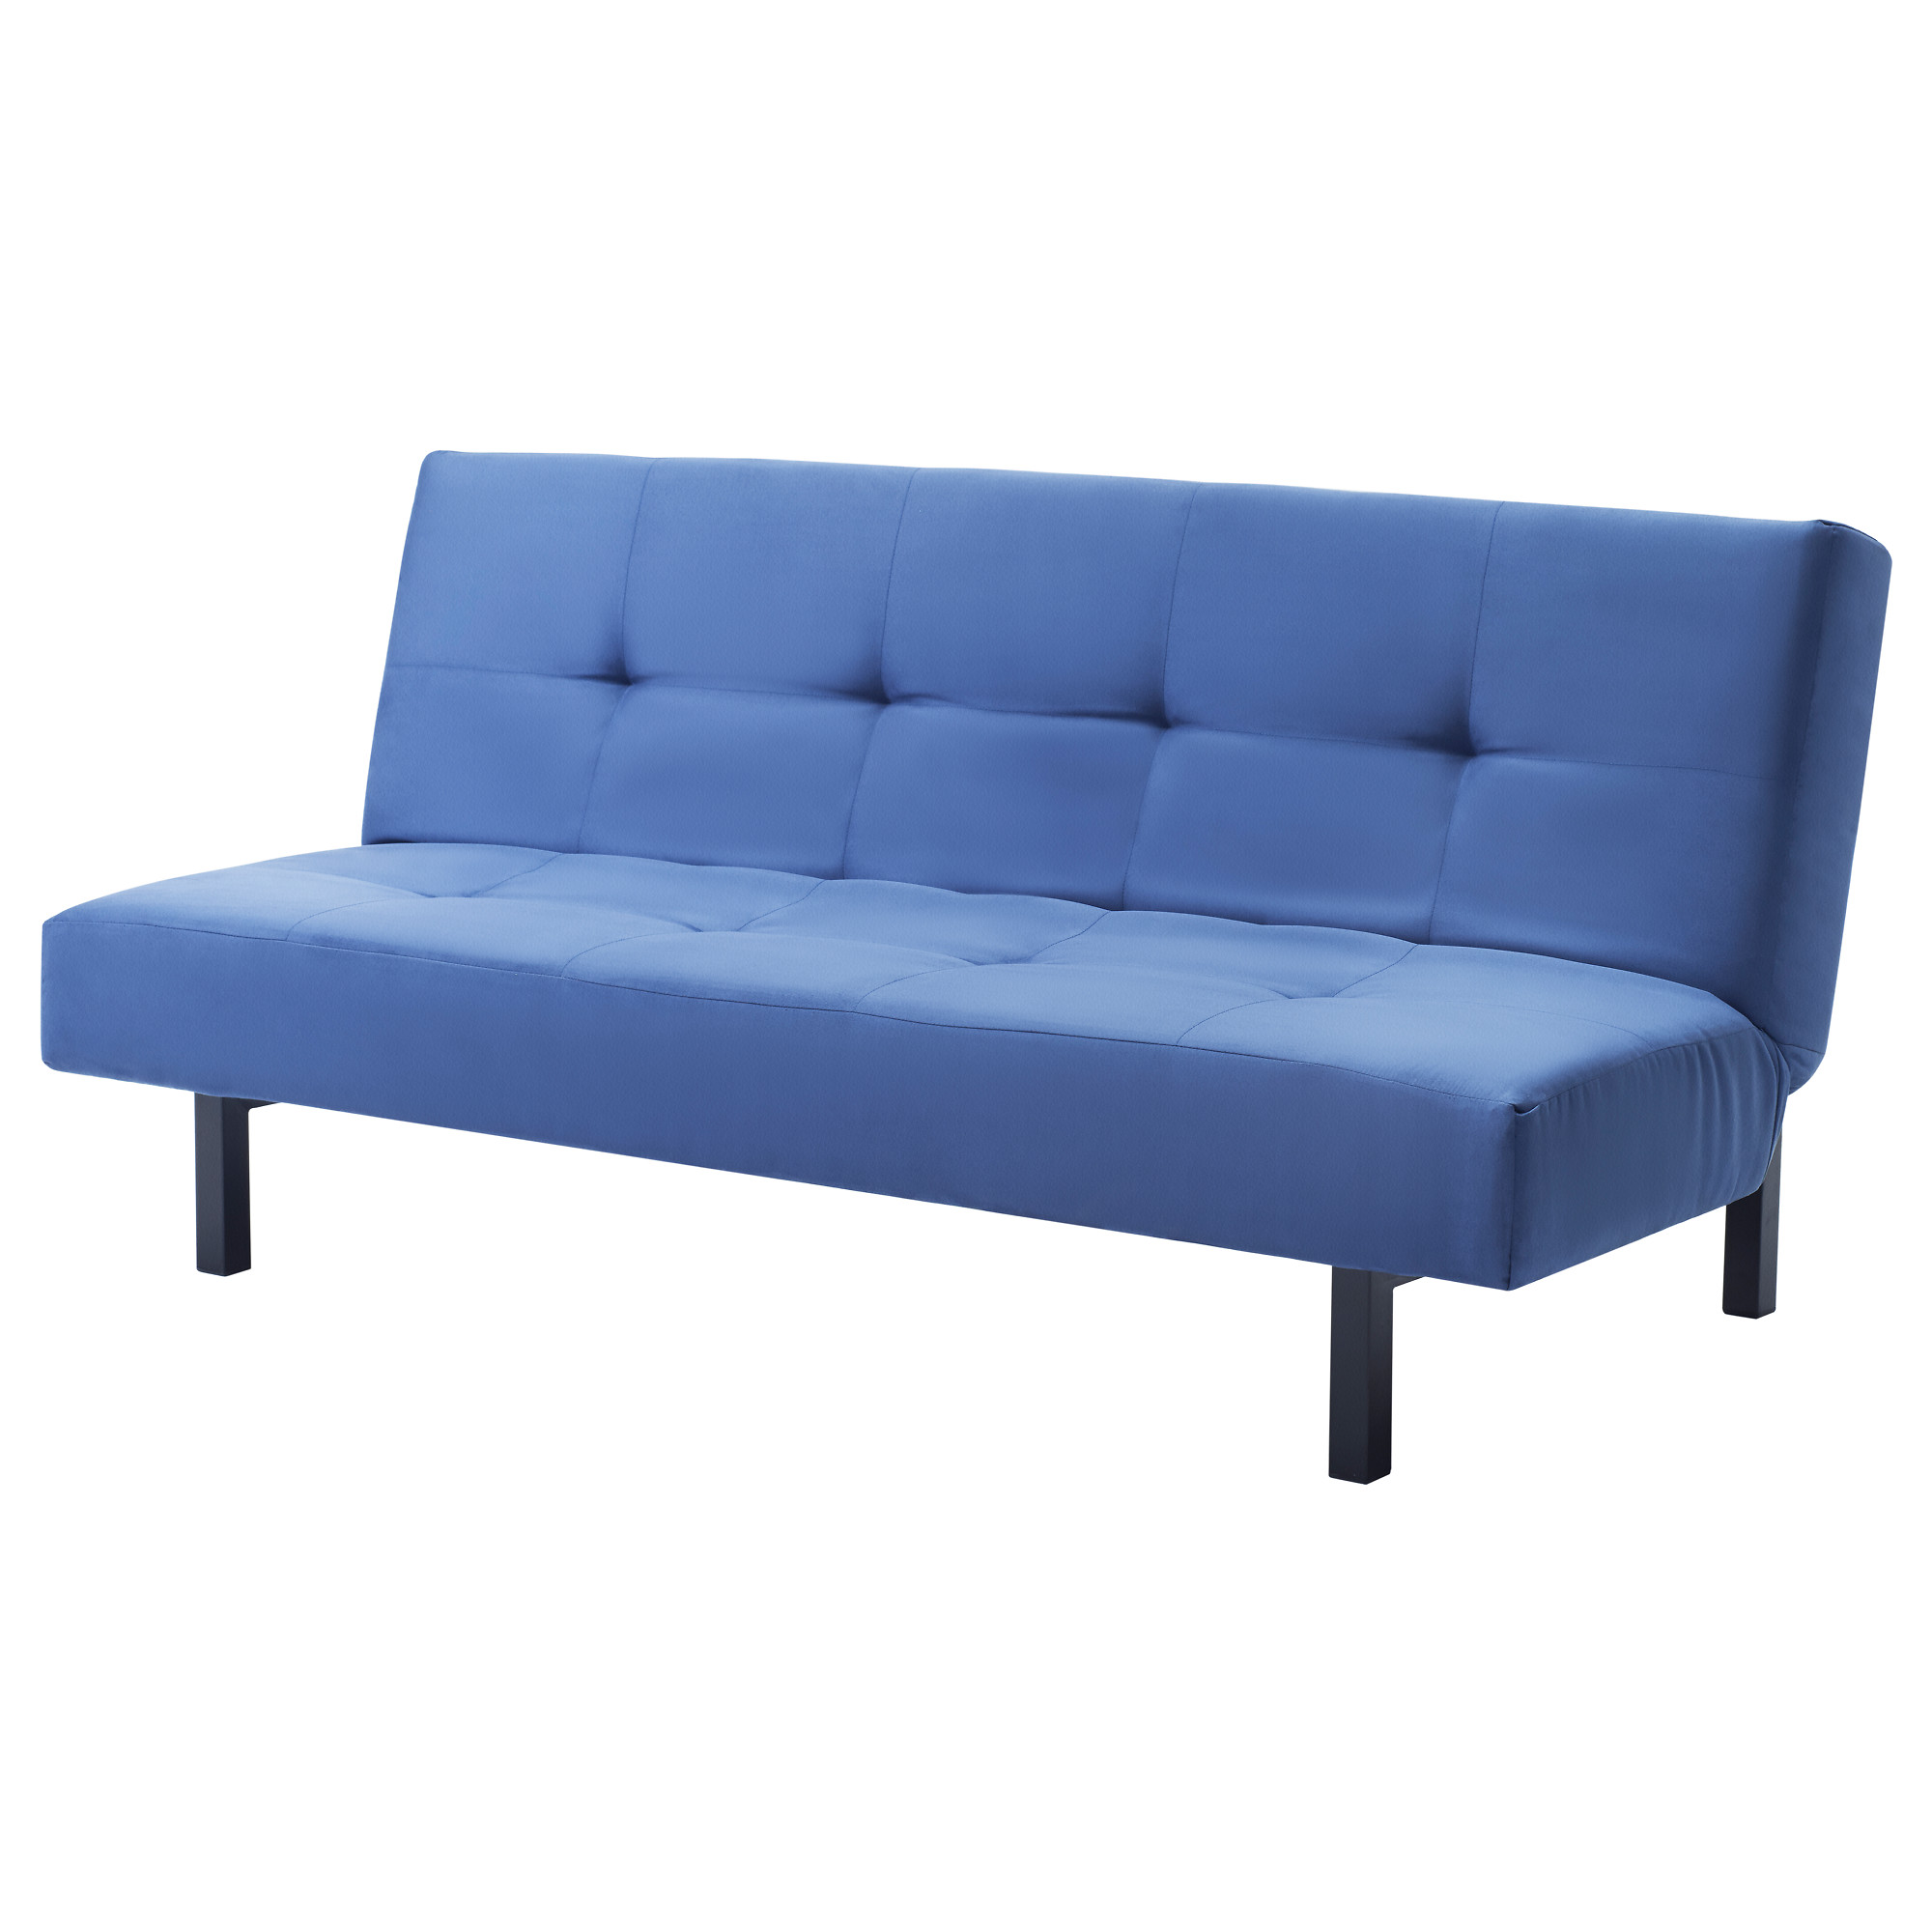 Best sofa sleepers ikea homesfeed for Ikea divan